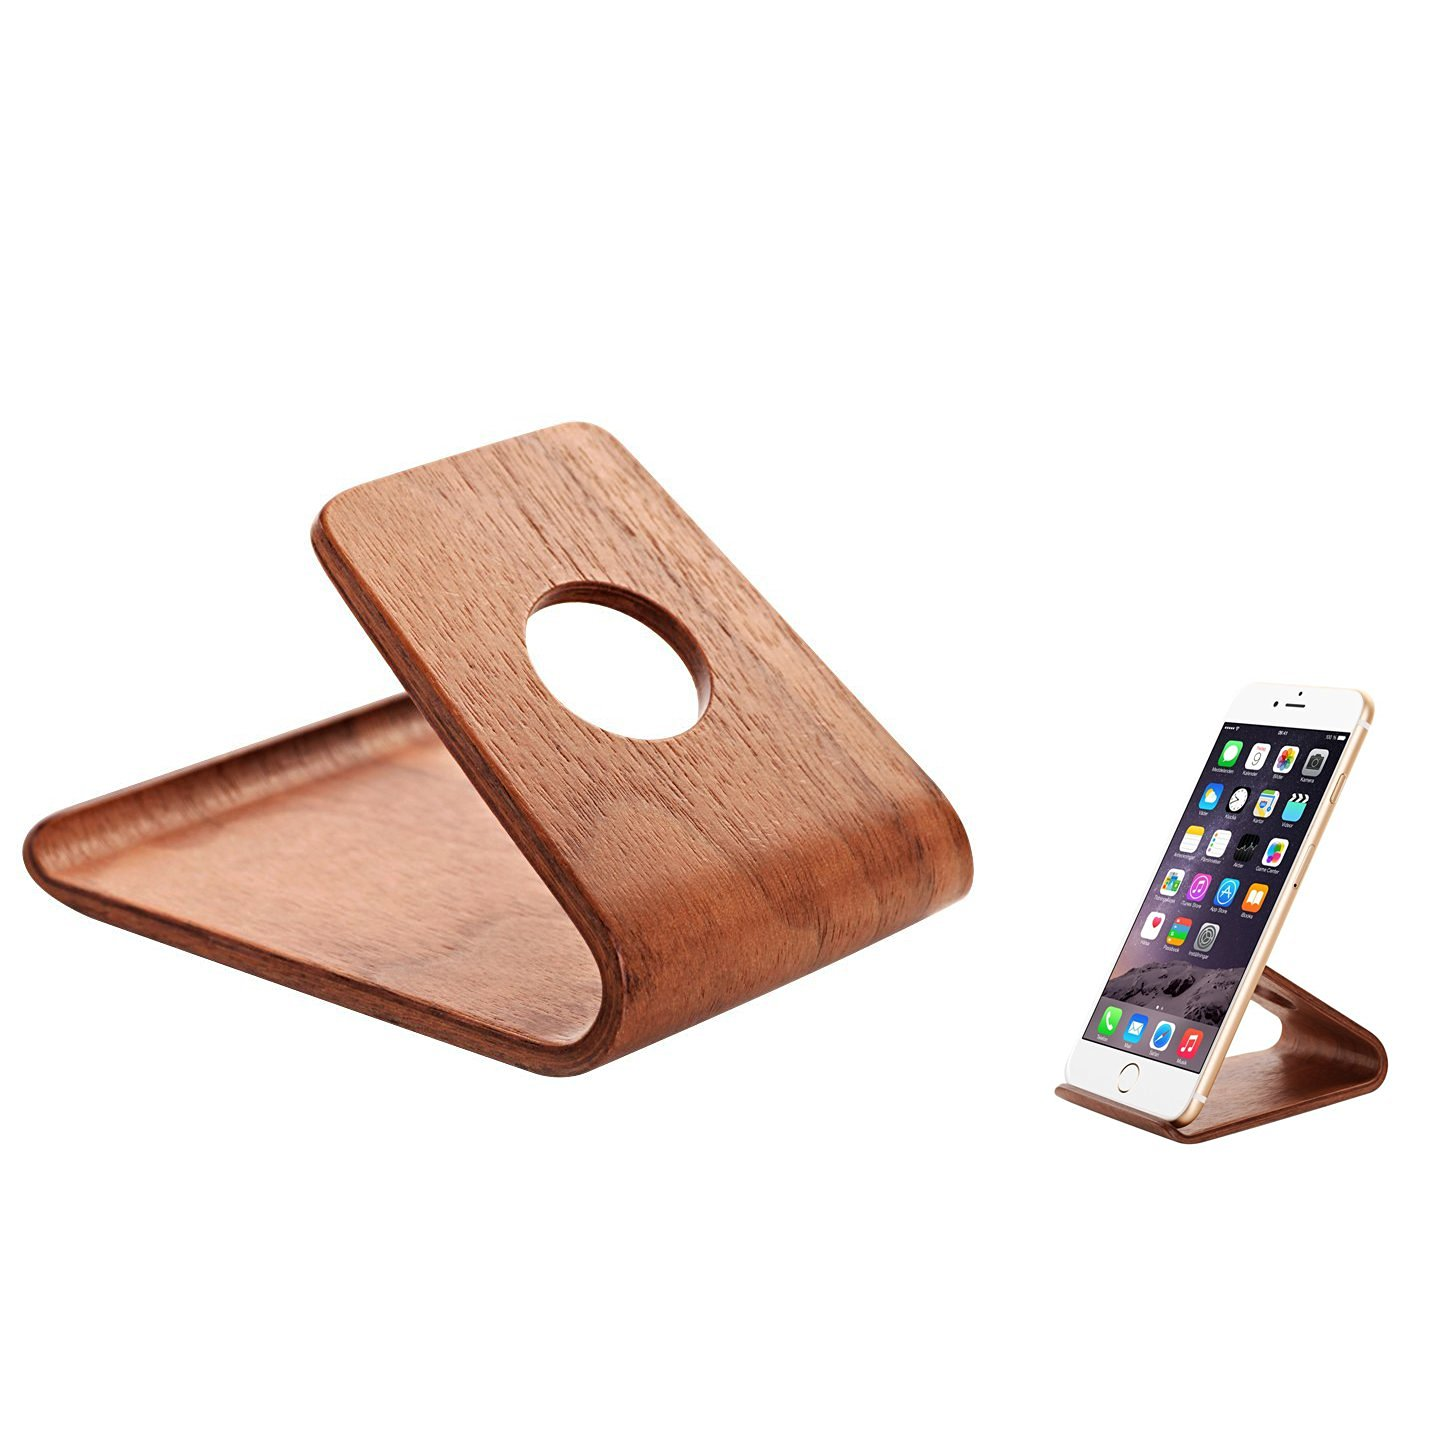 Tomplus New Premium Natural Wood Cell Phone Stand or Cell Phone Holder,a Good Cell Phone Decorations,for iPhone 6, iPhone 6 Plus, Samsung Galaxy S4 S5 S6 S6Edge, Note 3 4, Note 4 Edge, Google Nexus 6 5, Android, Lumia, HTC, LG, OnePlus One, Most Smart Phone (walnut Color)